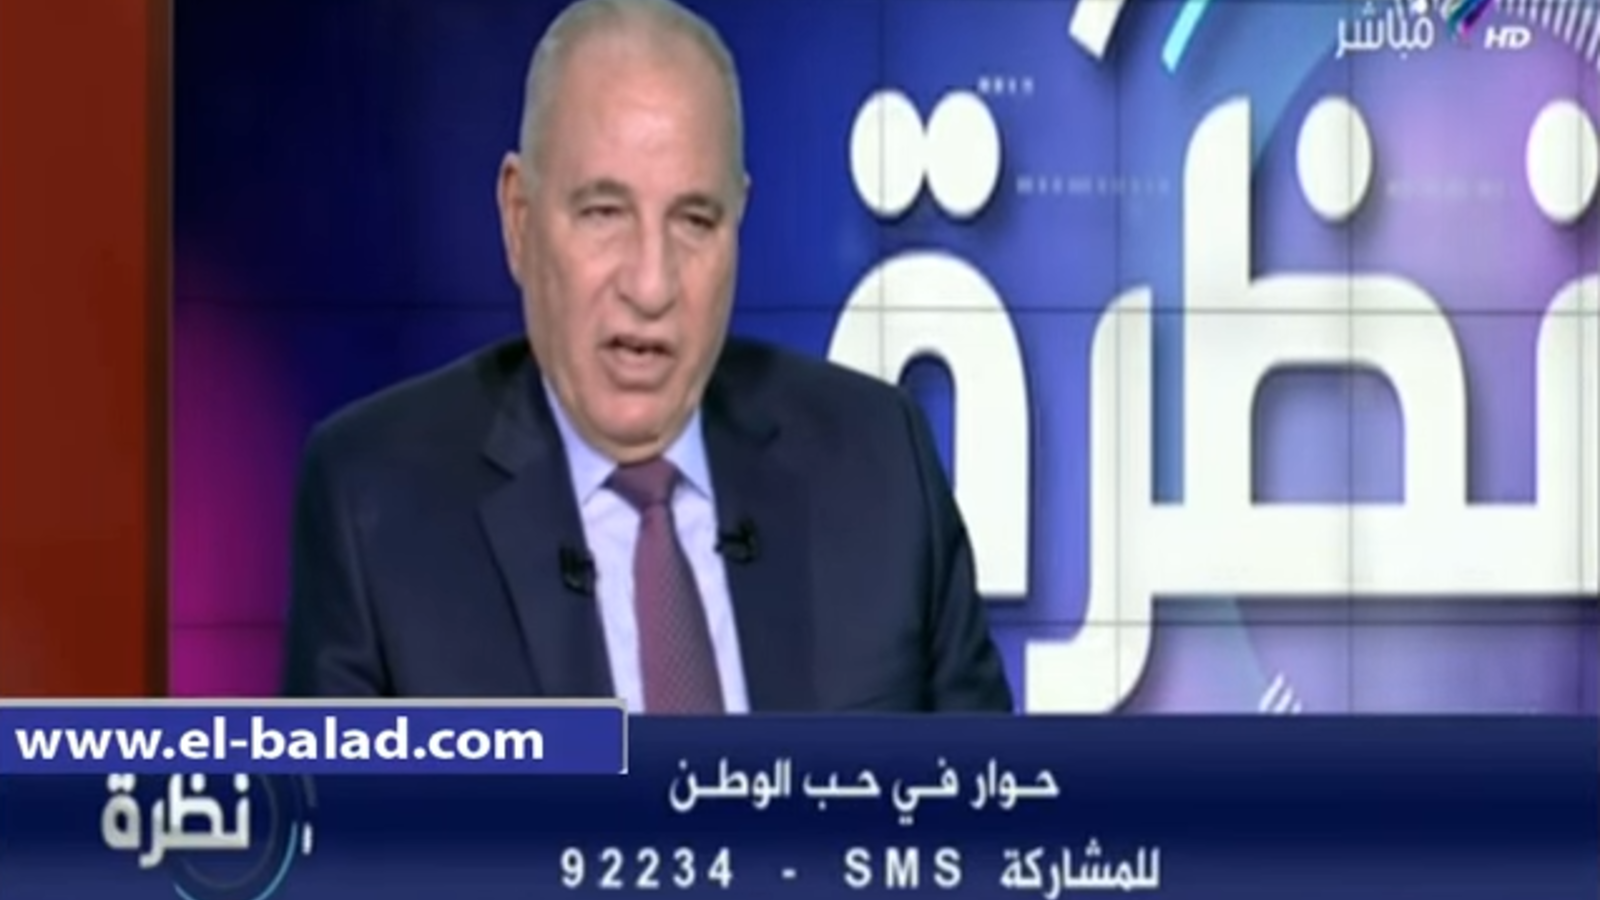 In an interview, Ahmed el-Zend said that prisoners were built to put away wrongdoers - and that includes journalists and even the prophet. (Screenshot via YouTube)